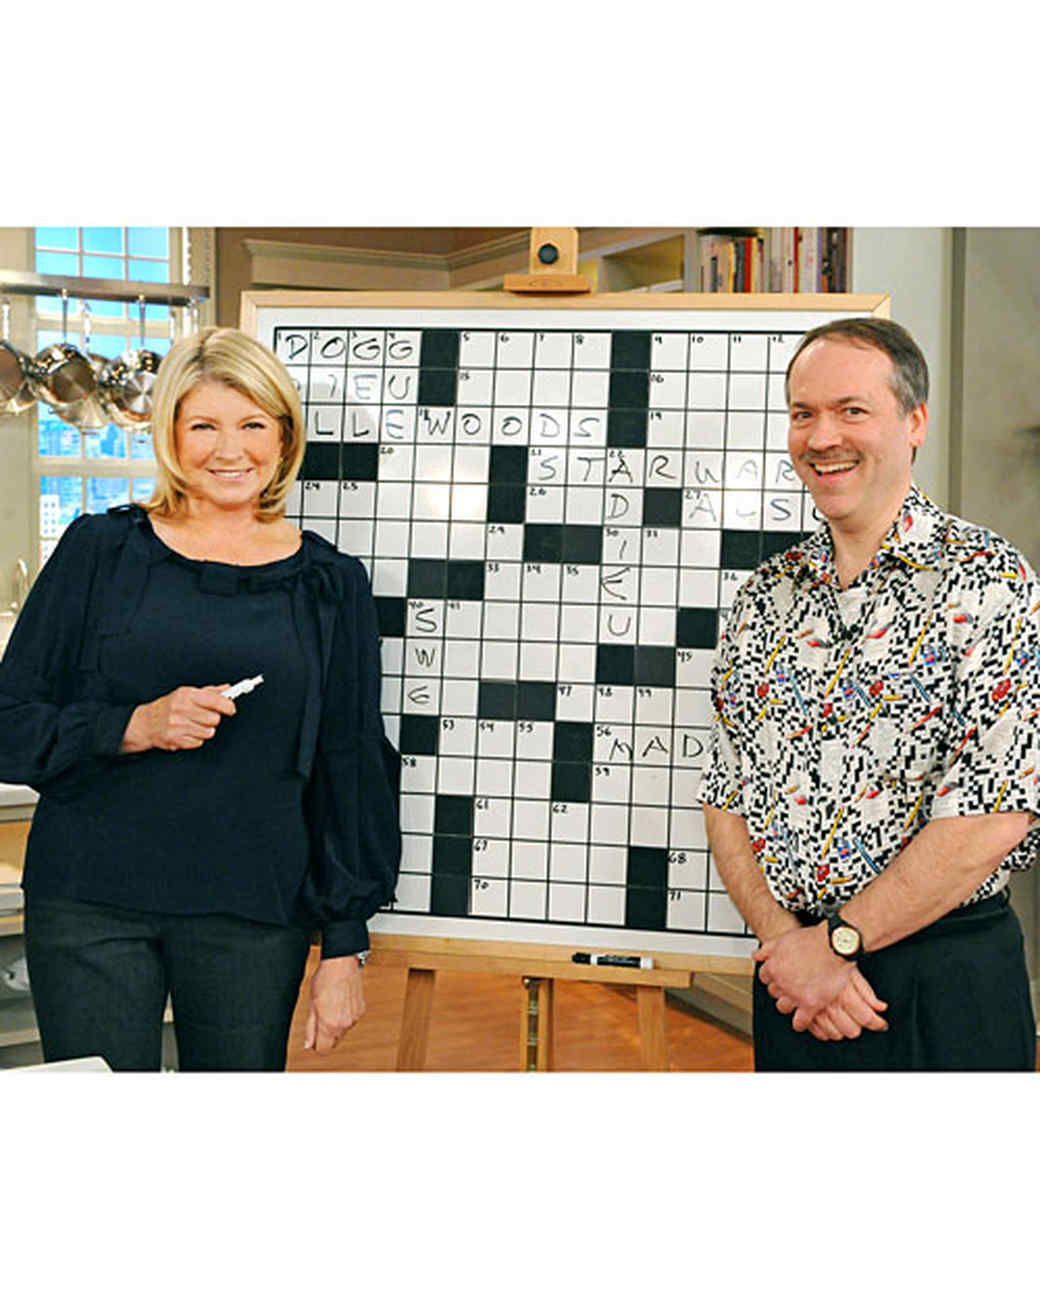 6106_022211_martha_will_crossword.jpg